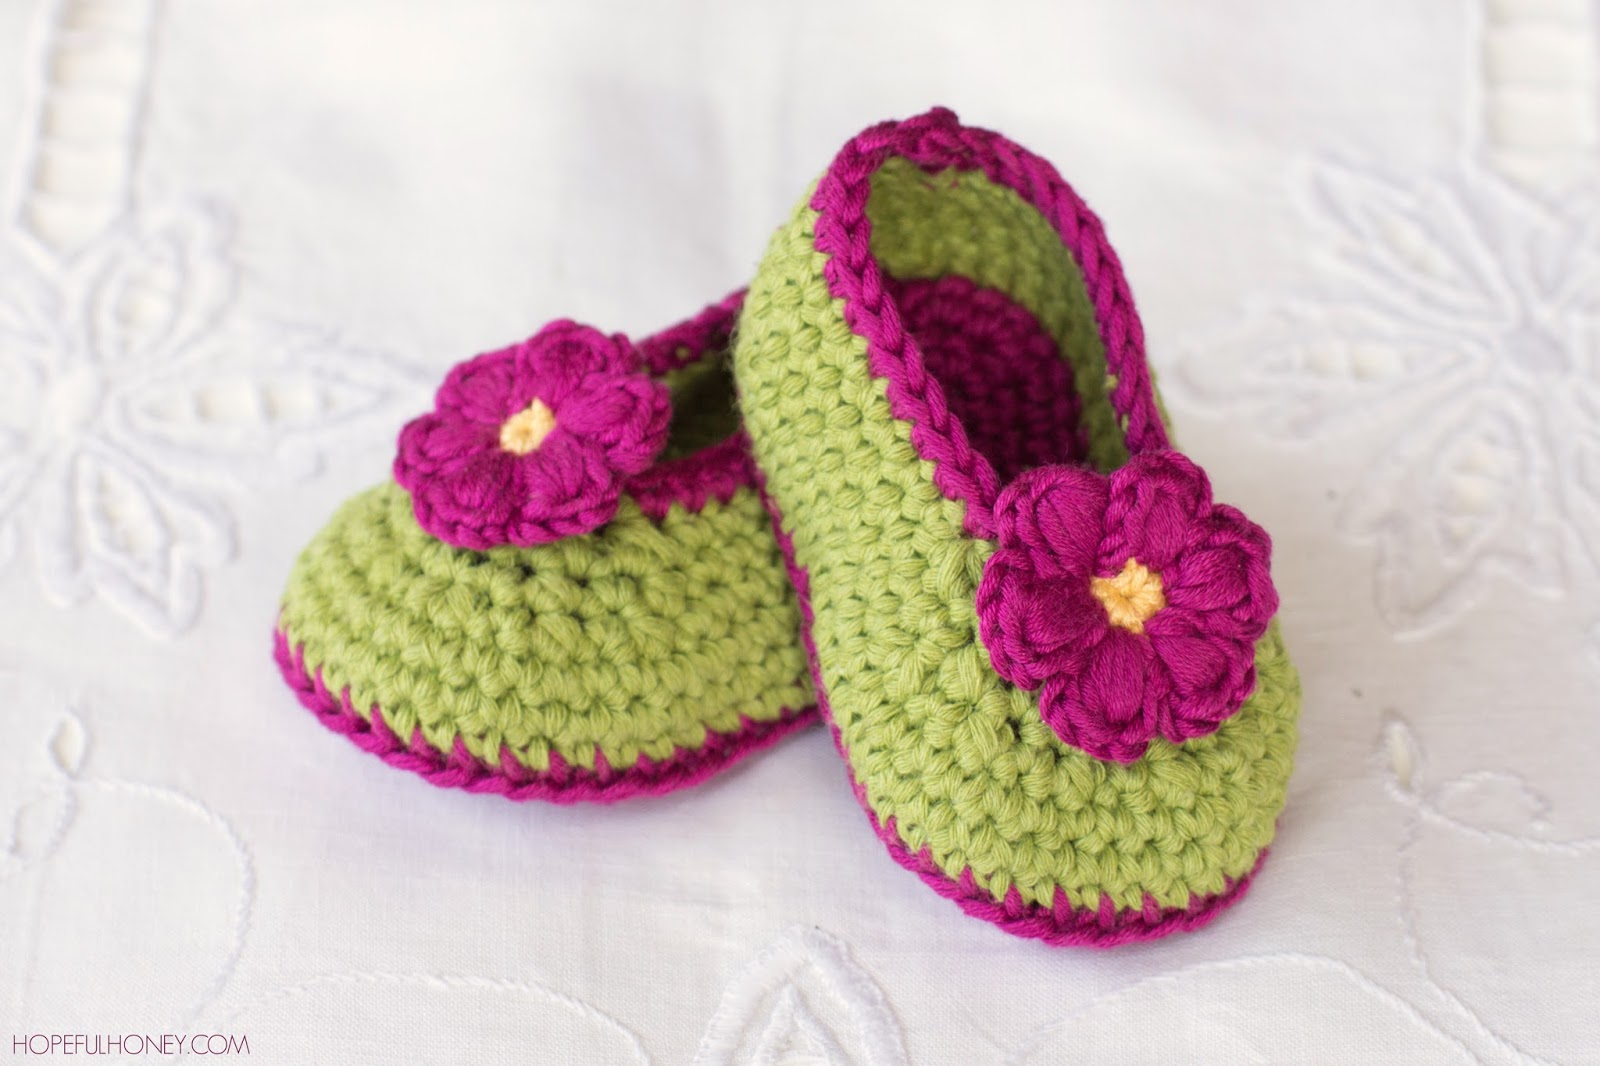 Crochet Baby Booties Pattern For Free : Hopeful Honey Craft, Crochet, Create: Fairy Blossom Baby ...